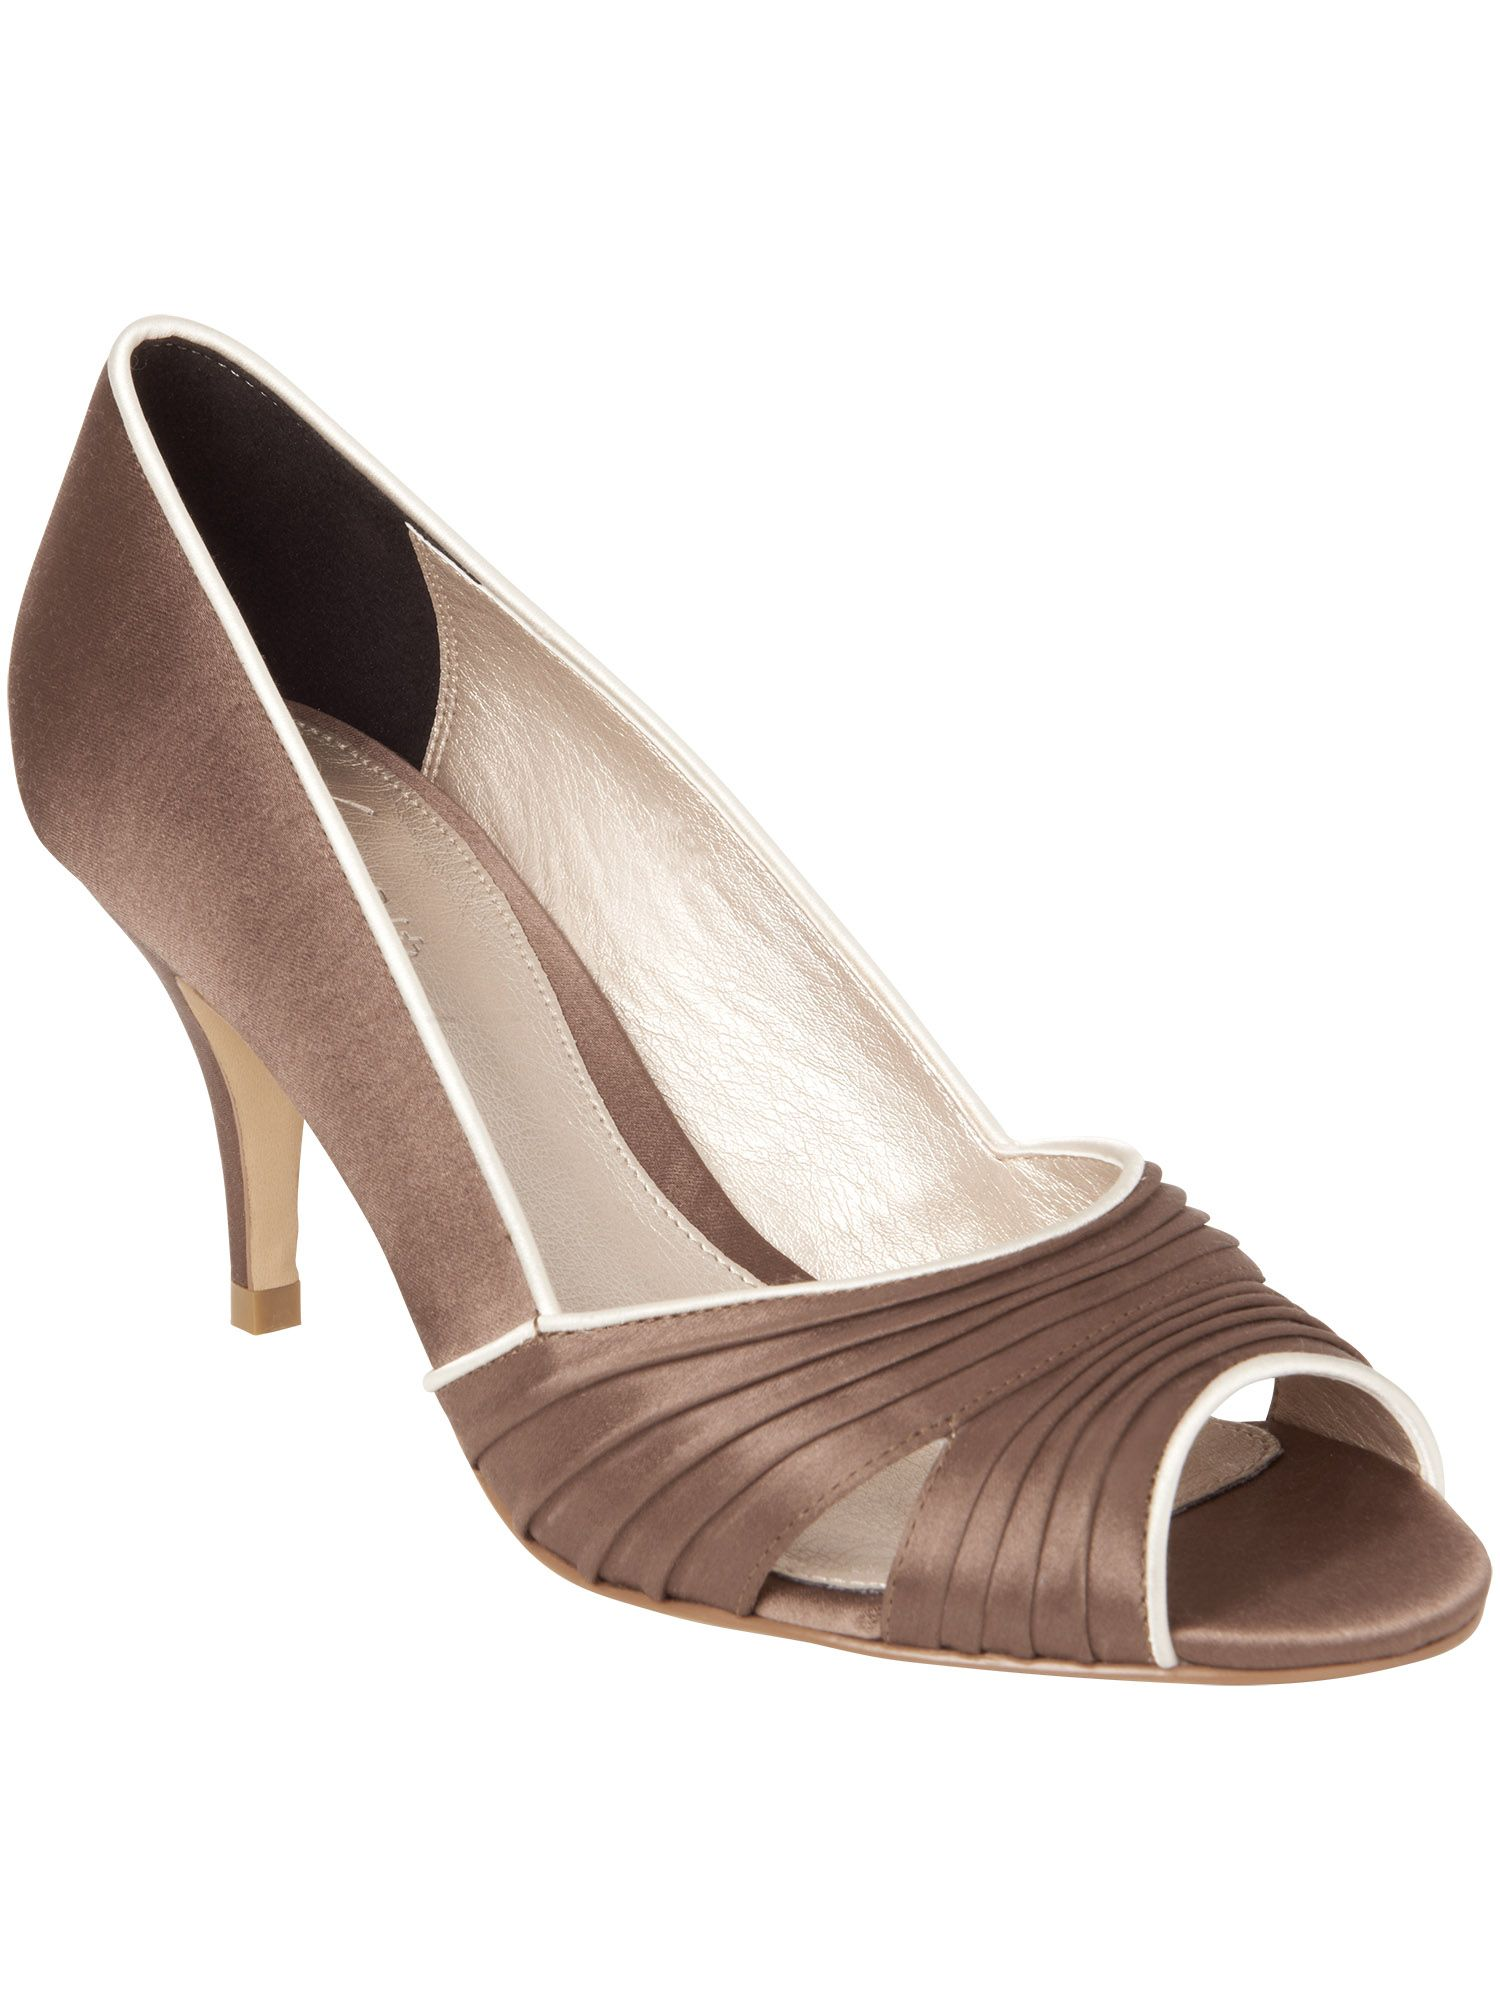 Fia pleat peep toe shoes